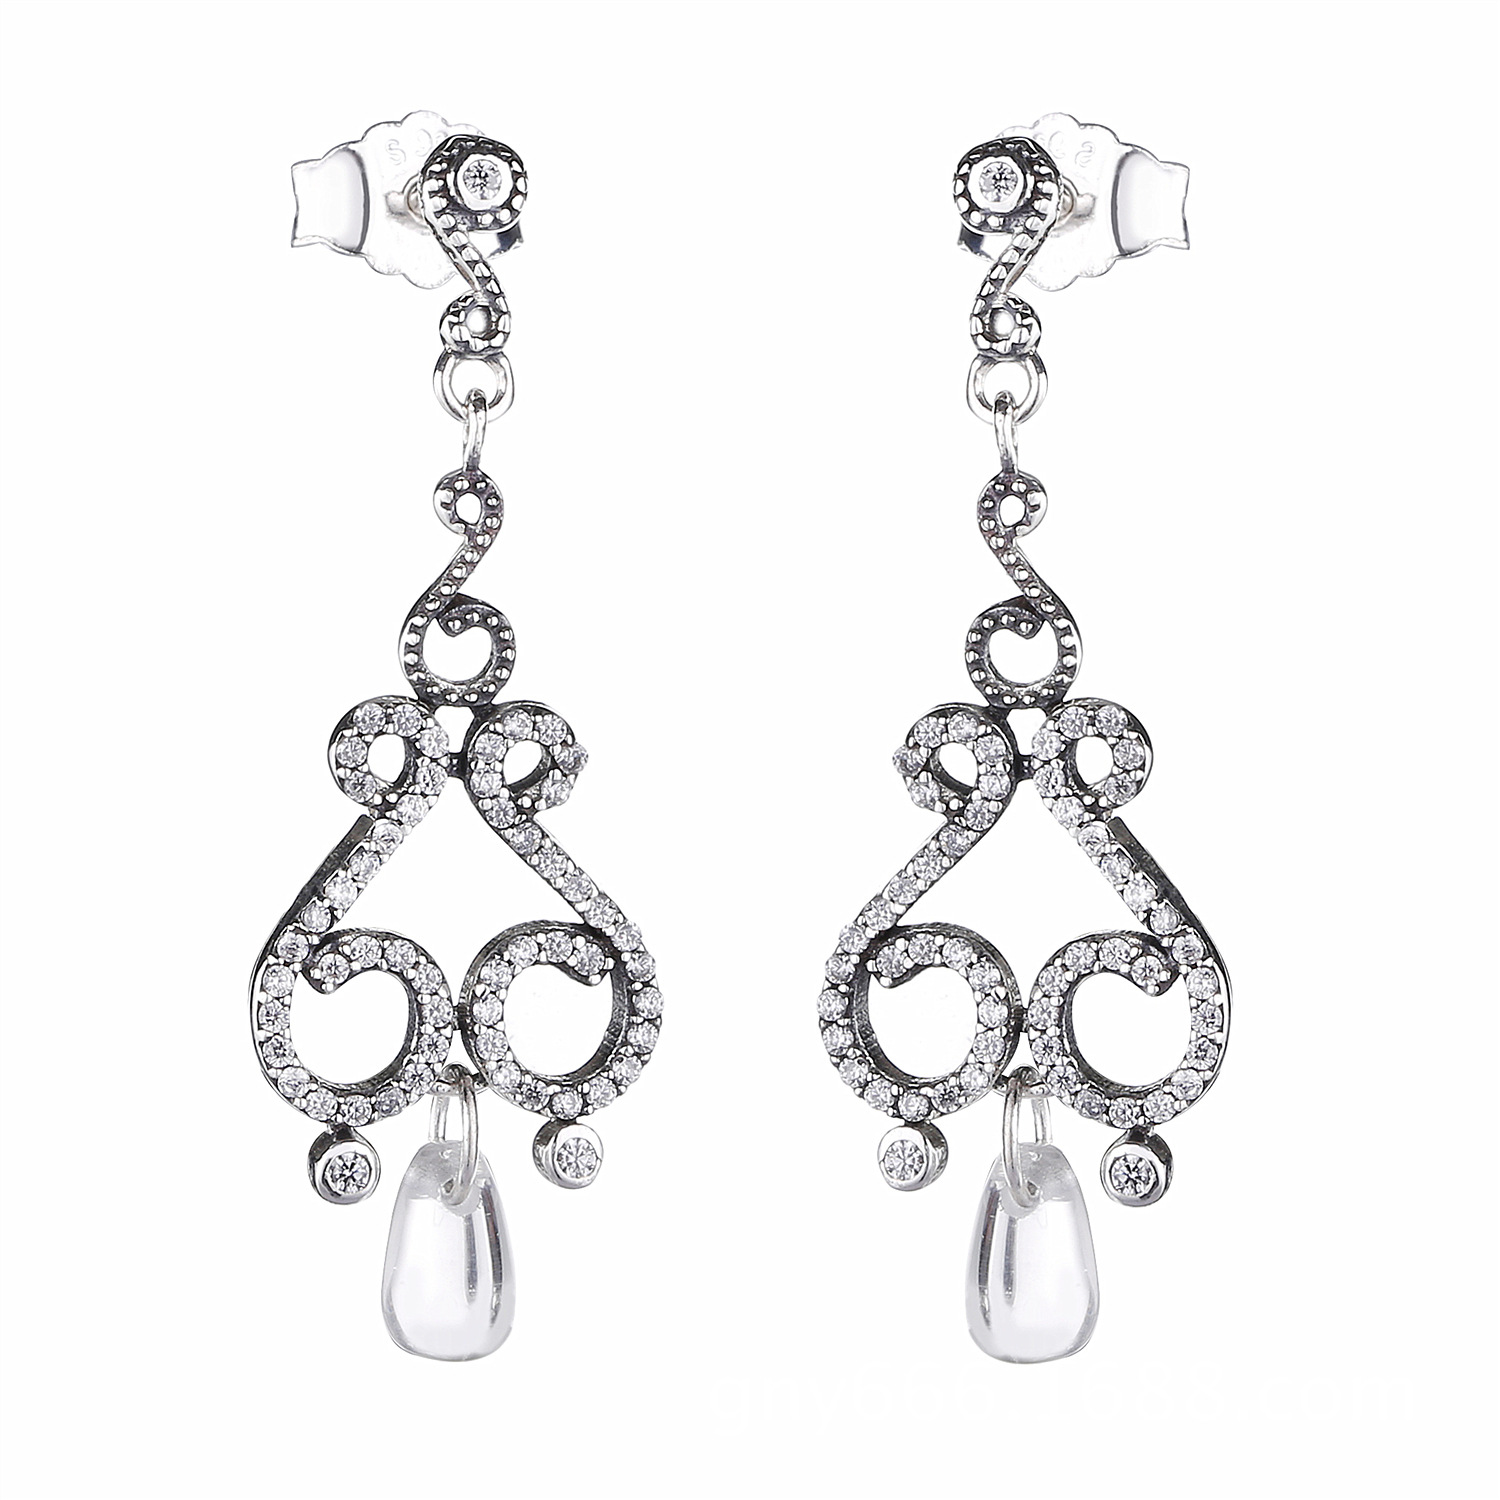 Pandora Drop Earrings: 2018 Spring 925 Sterling Silver Original Chandelier